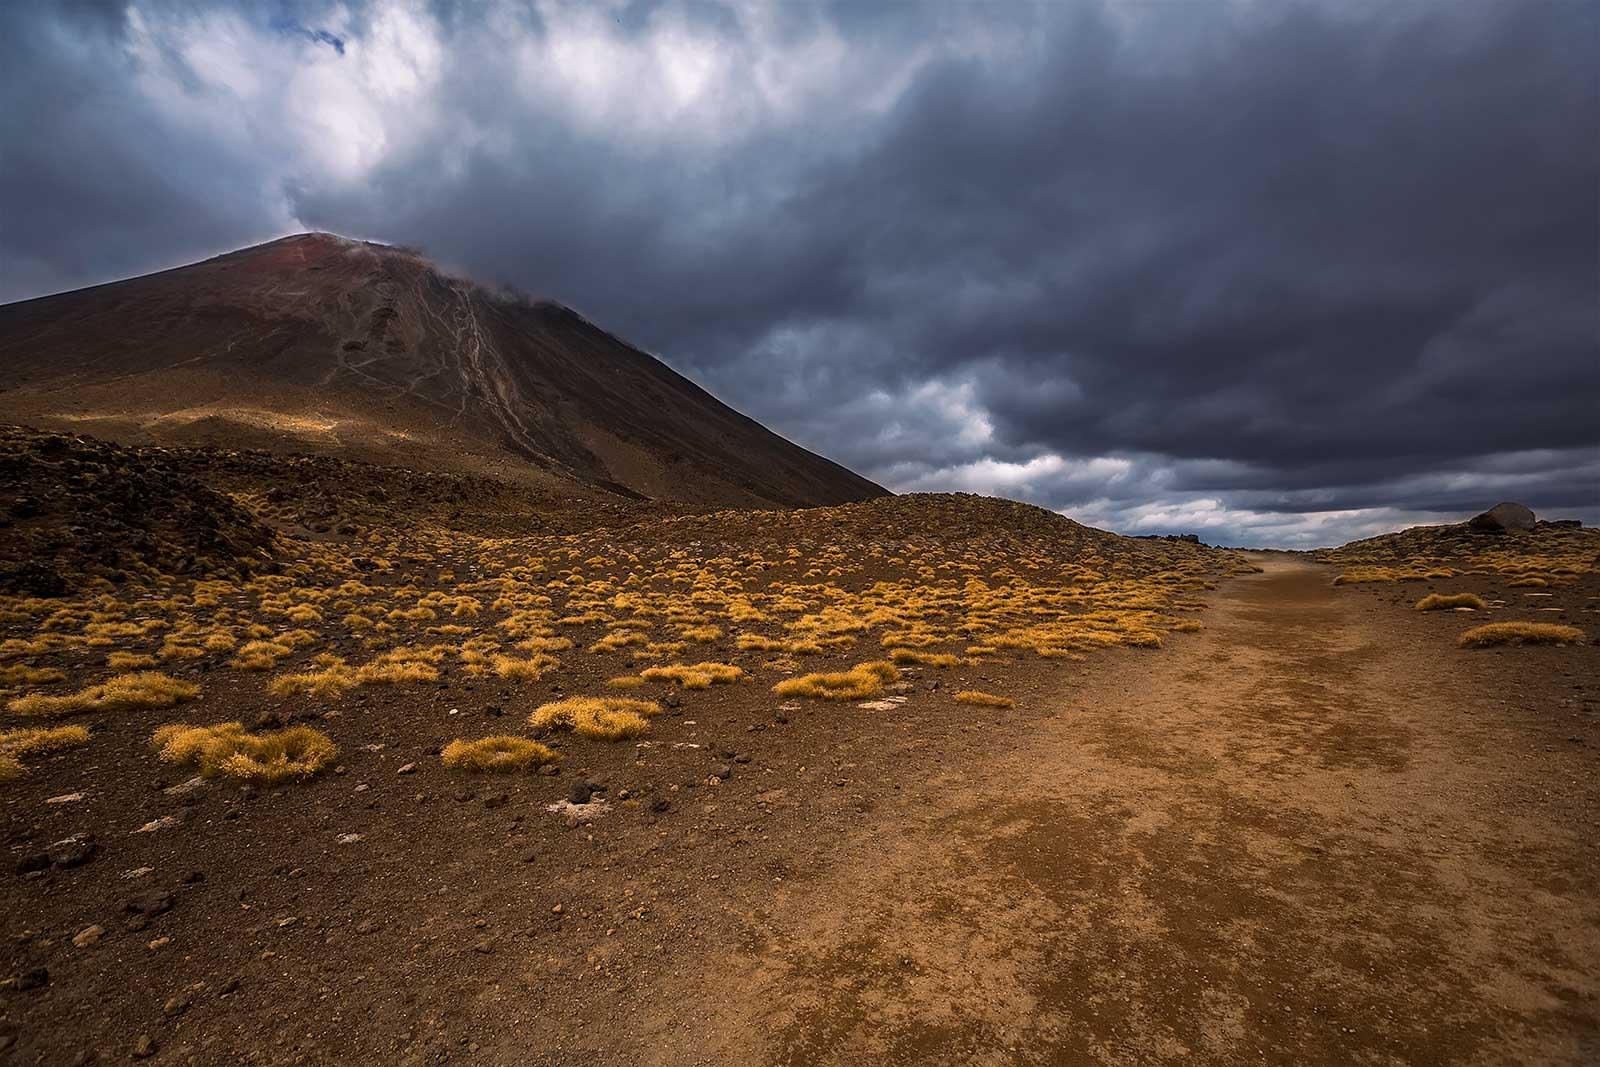 tongariro-alpine-crossing-mt-ngauruhoe-new-zealand